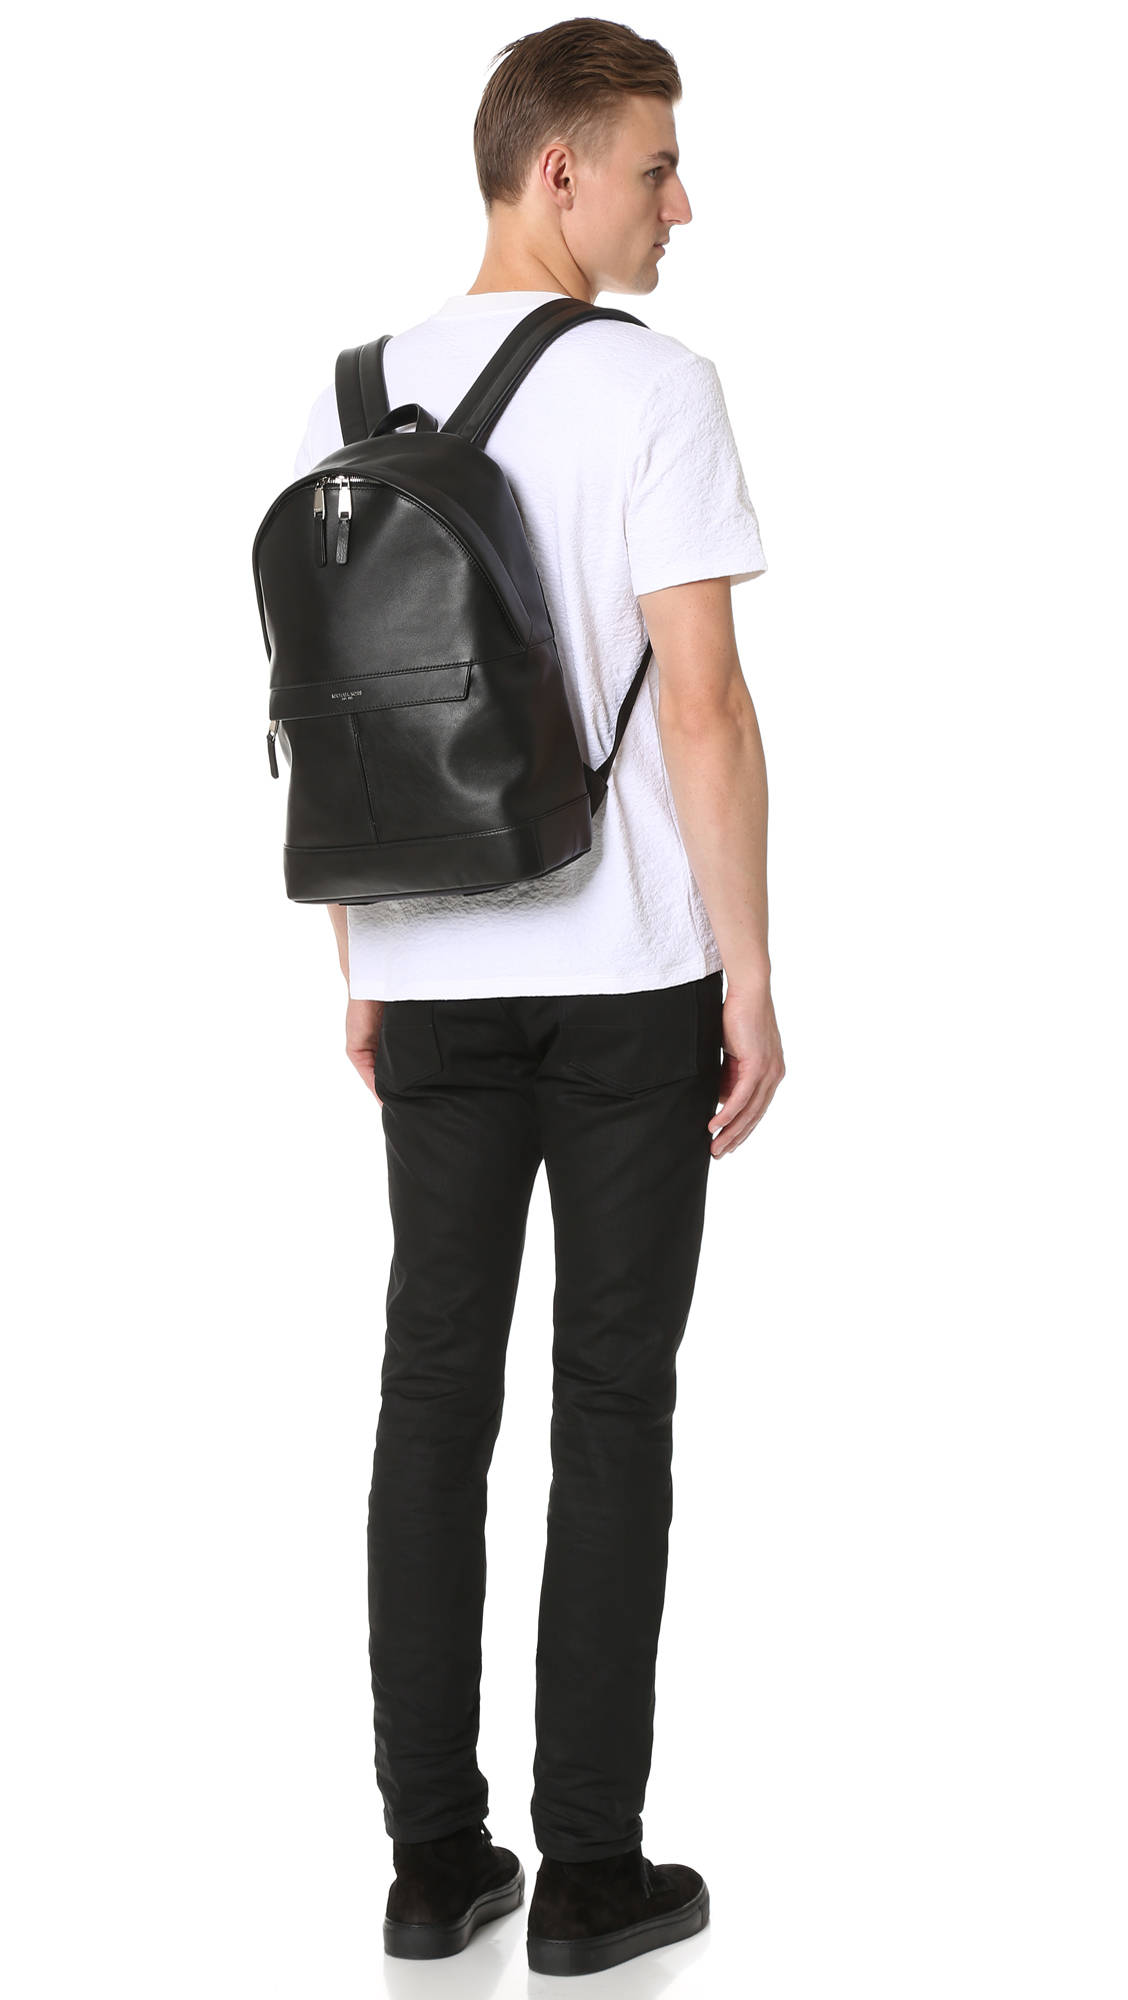 1f0e18a27d22 Michael Kors Owen Leather Backpack in Black for Men - Lyst